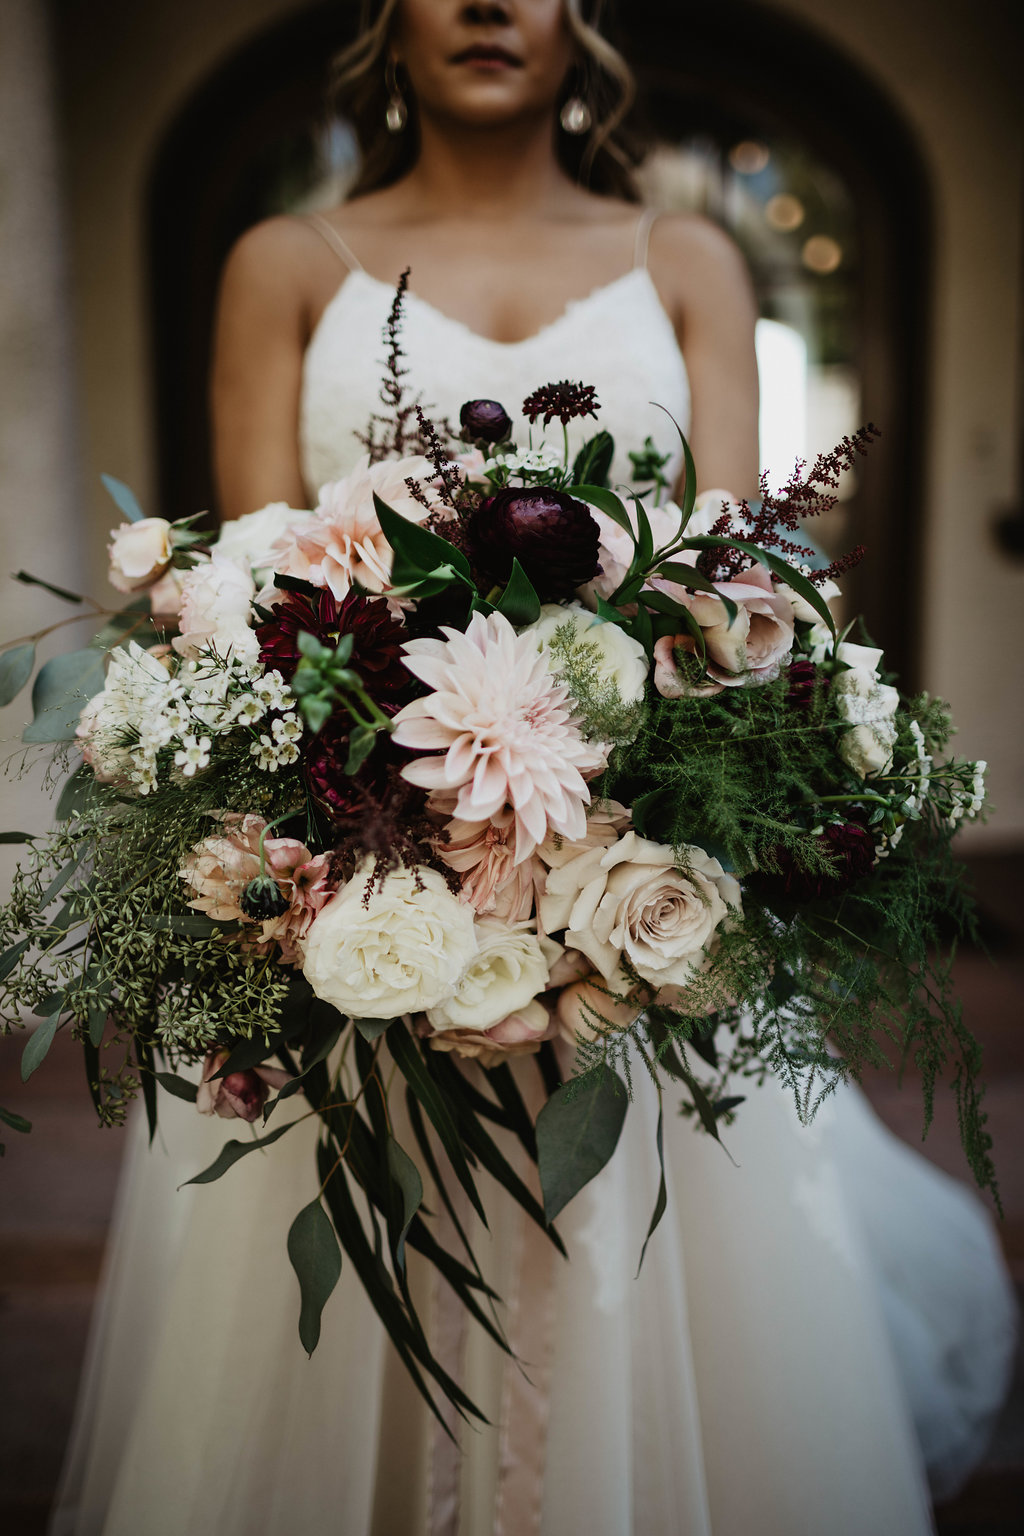 Romantic Blush and Burgundy Bridal bouquet - Wattles Mansion, Hollywood, CA - Royal Bee Florals and Events